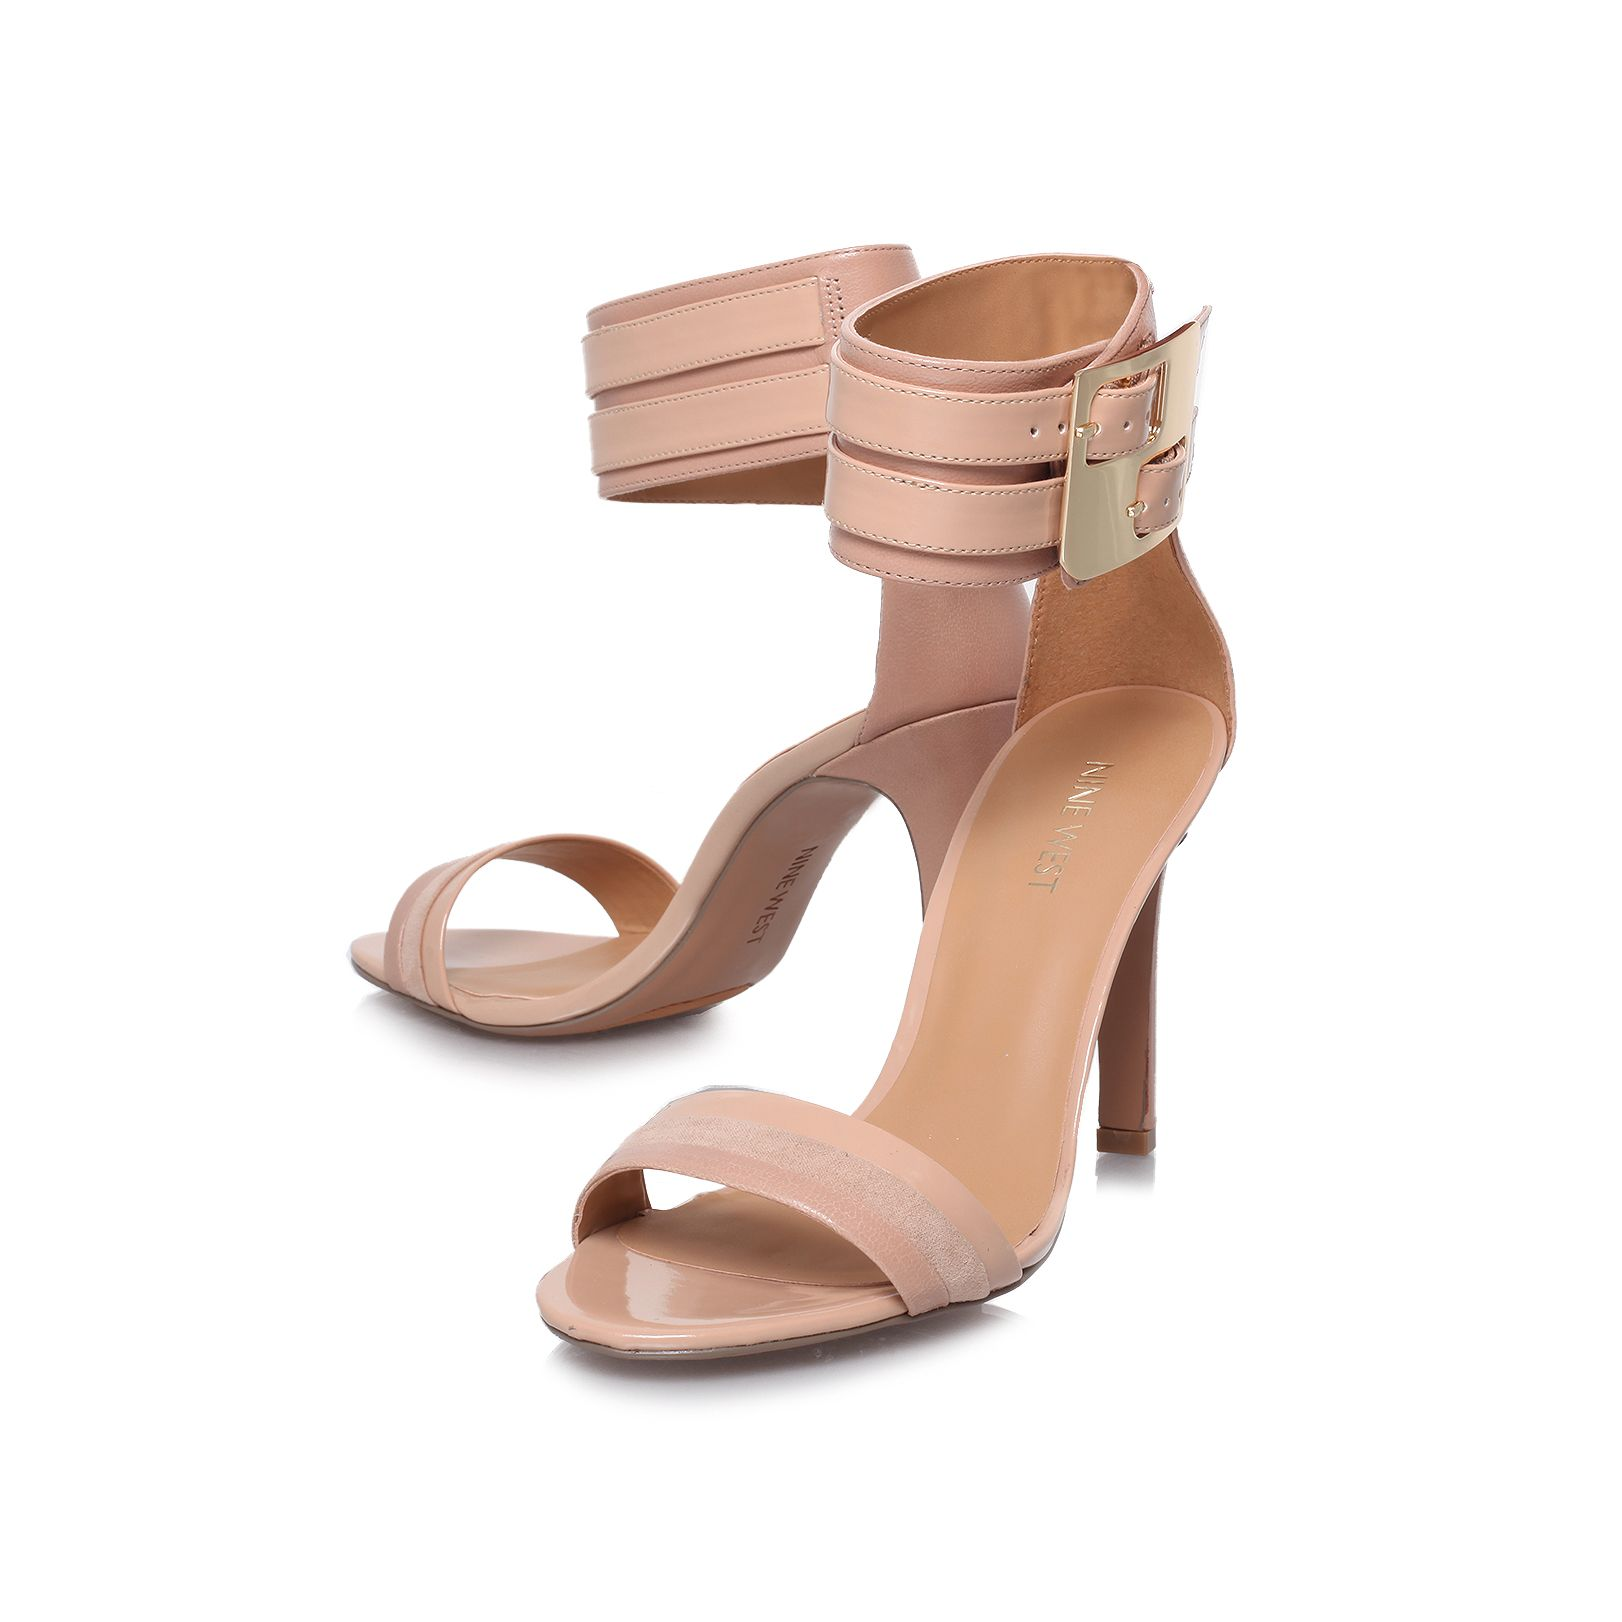 Estrilda high heeled court shoes